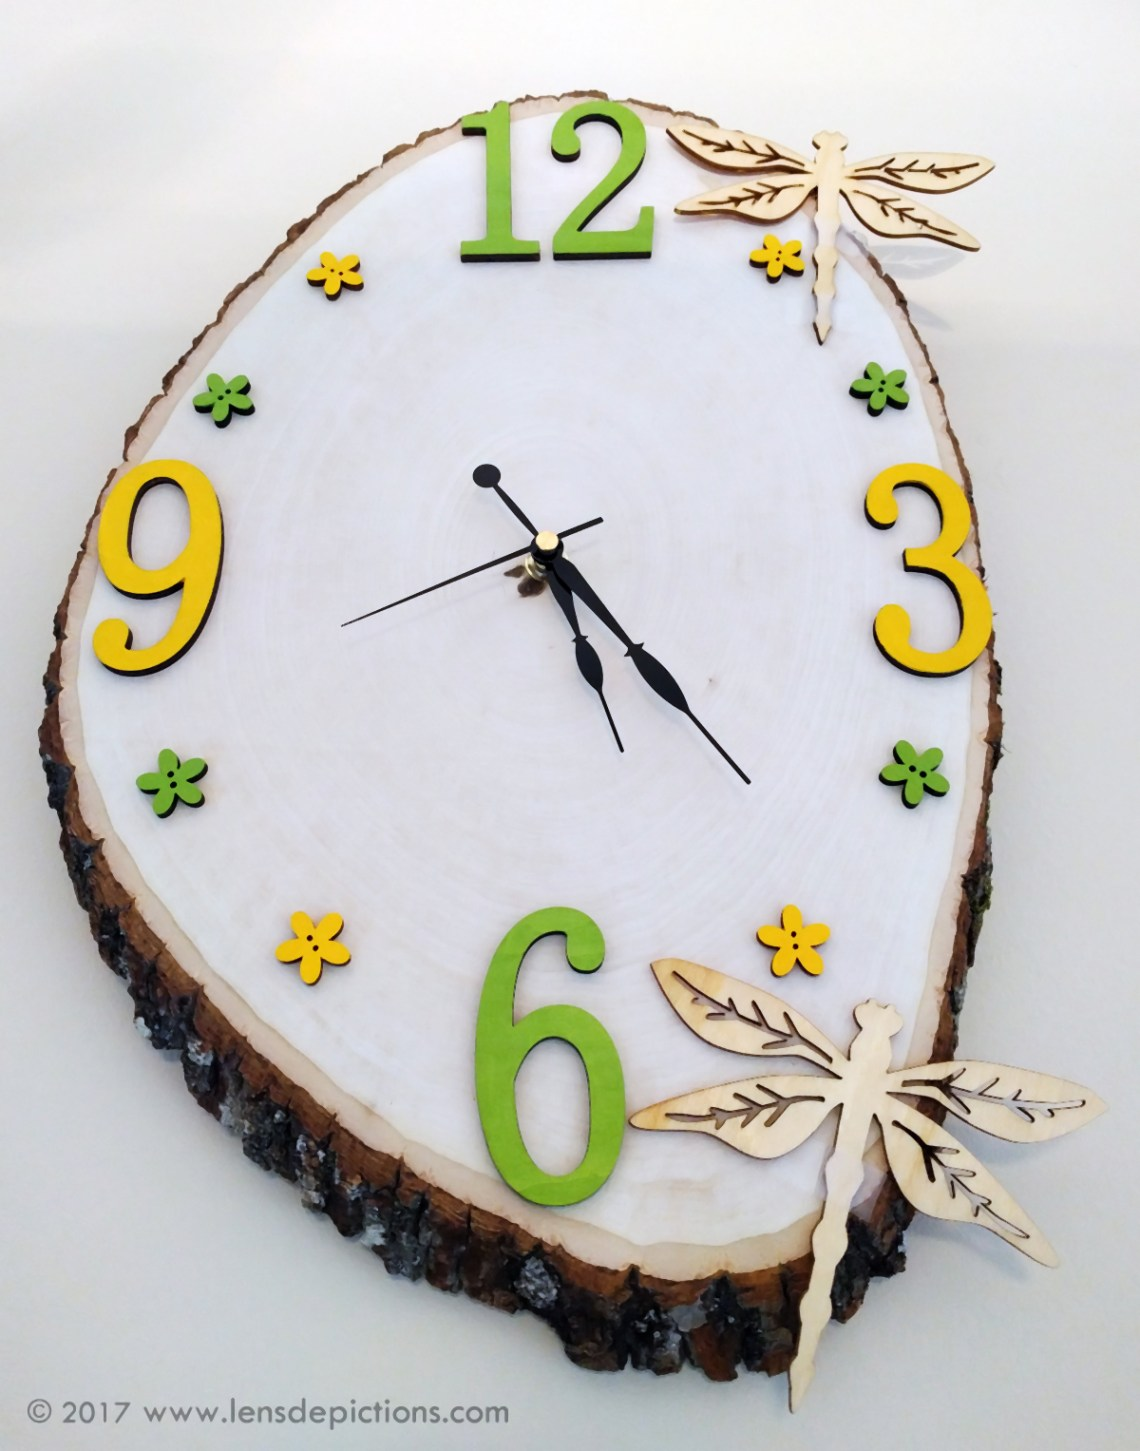 Woodenclock-lensdepictions-1